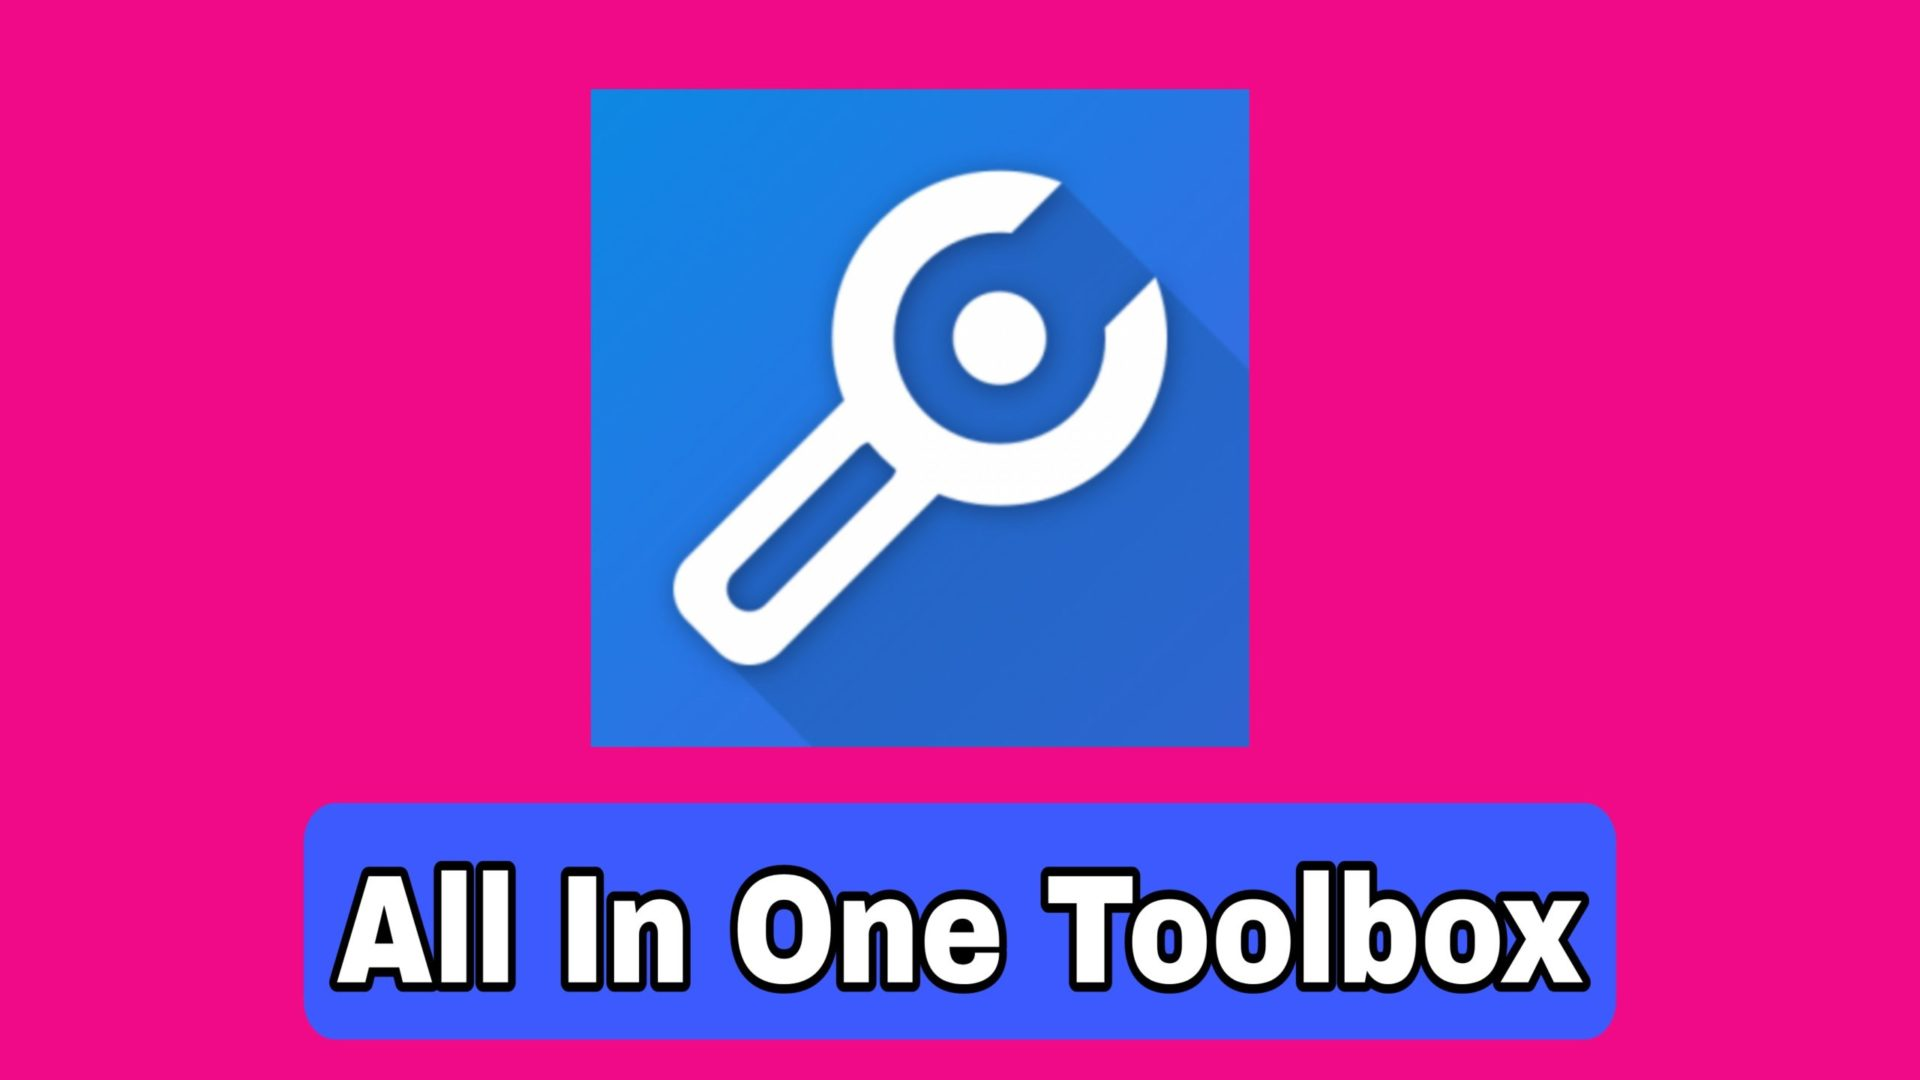 All-In-One Toolbox PRO Mod Apk v8.2.7.7.3 (Unlocked) Download